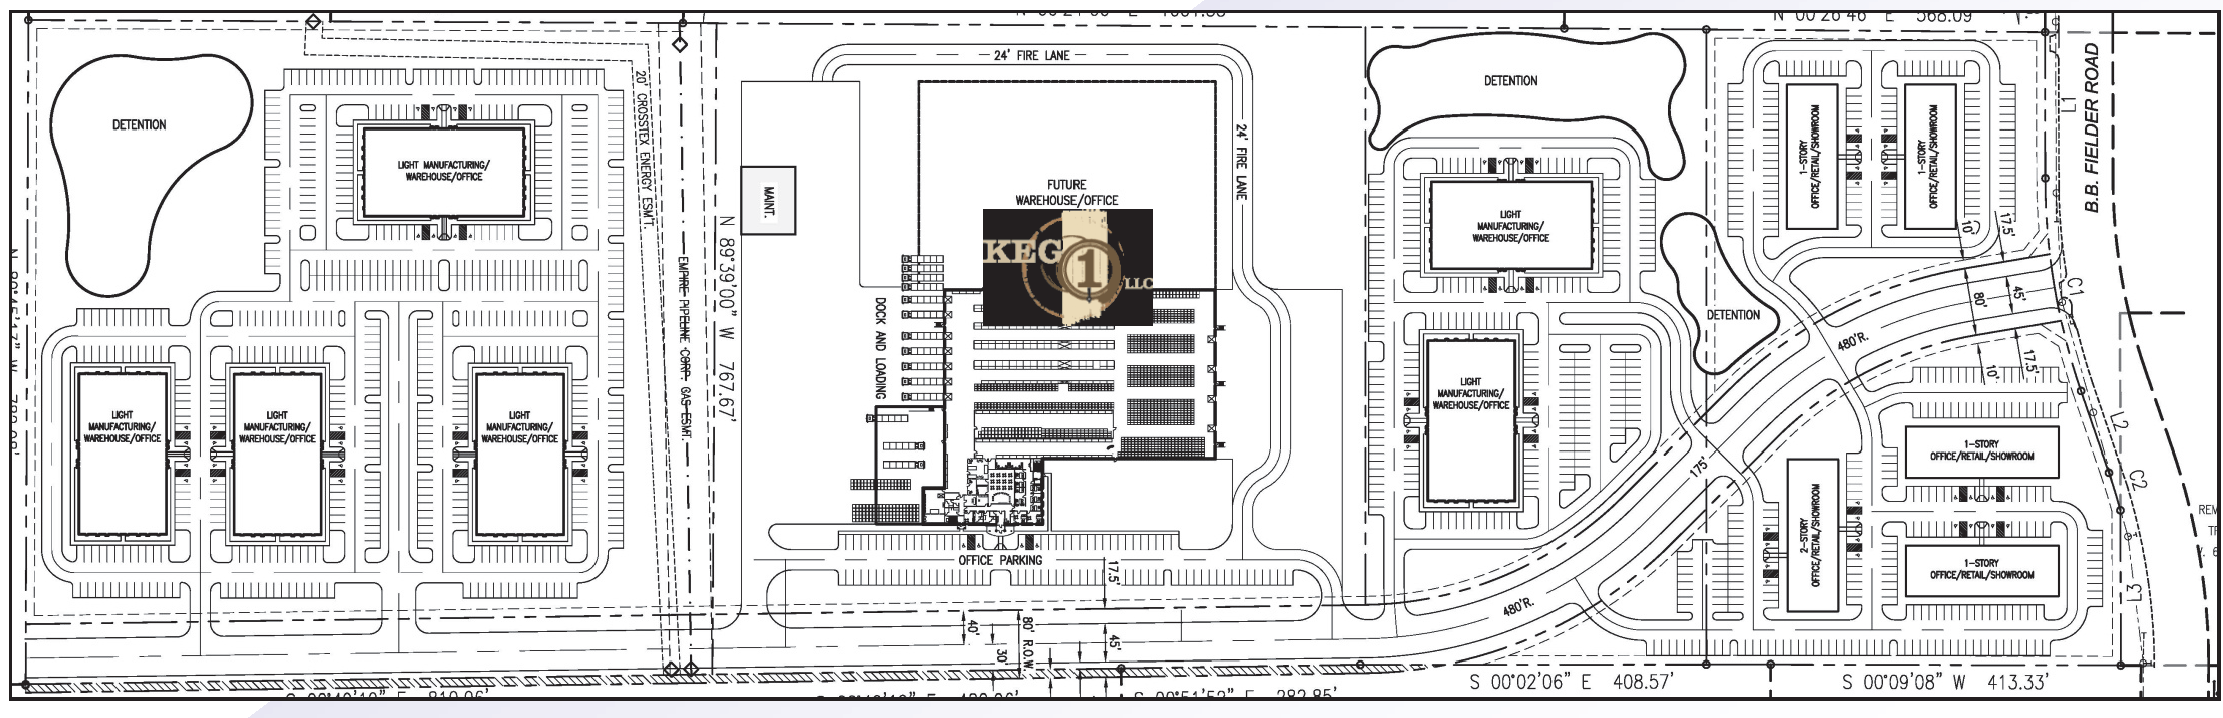 Weatherford Corporate Center Aerial Site Plan